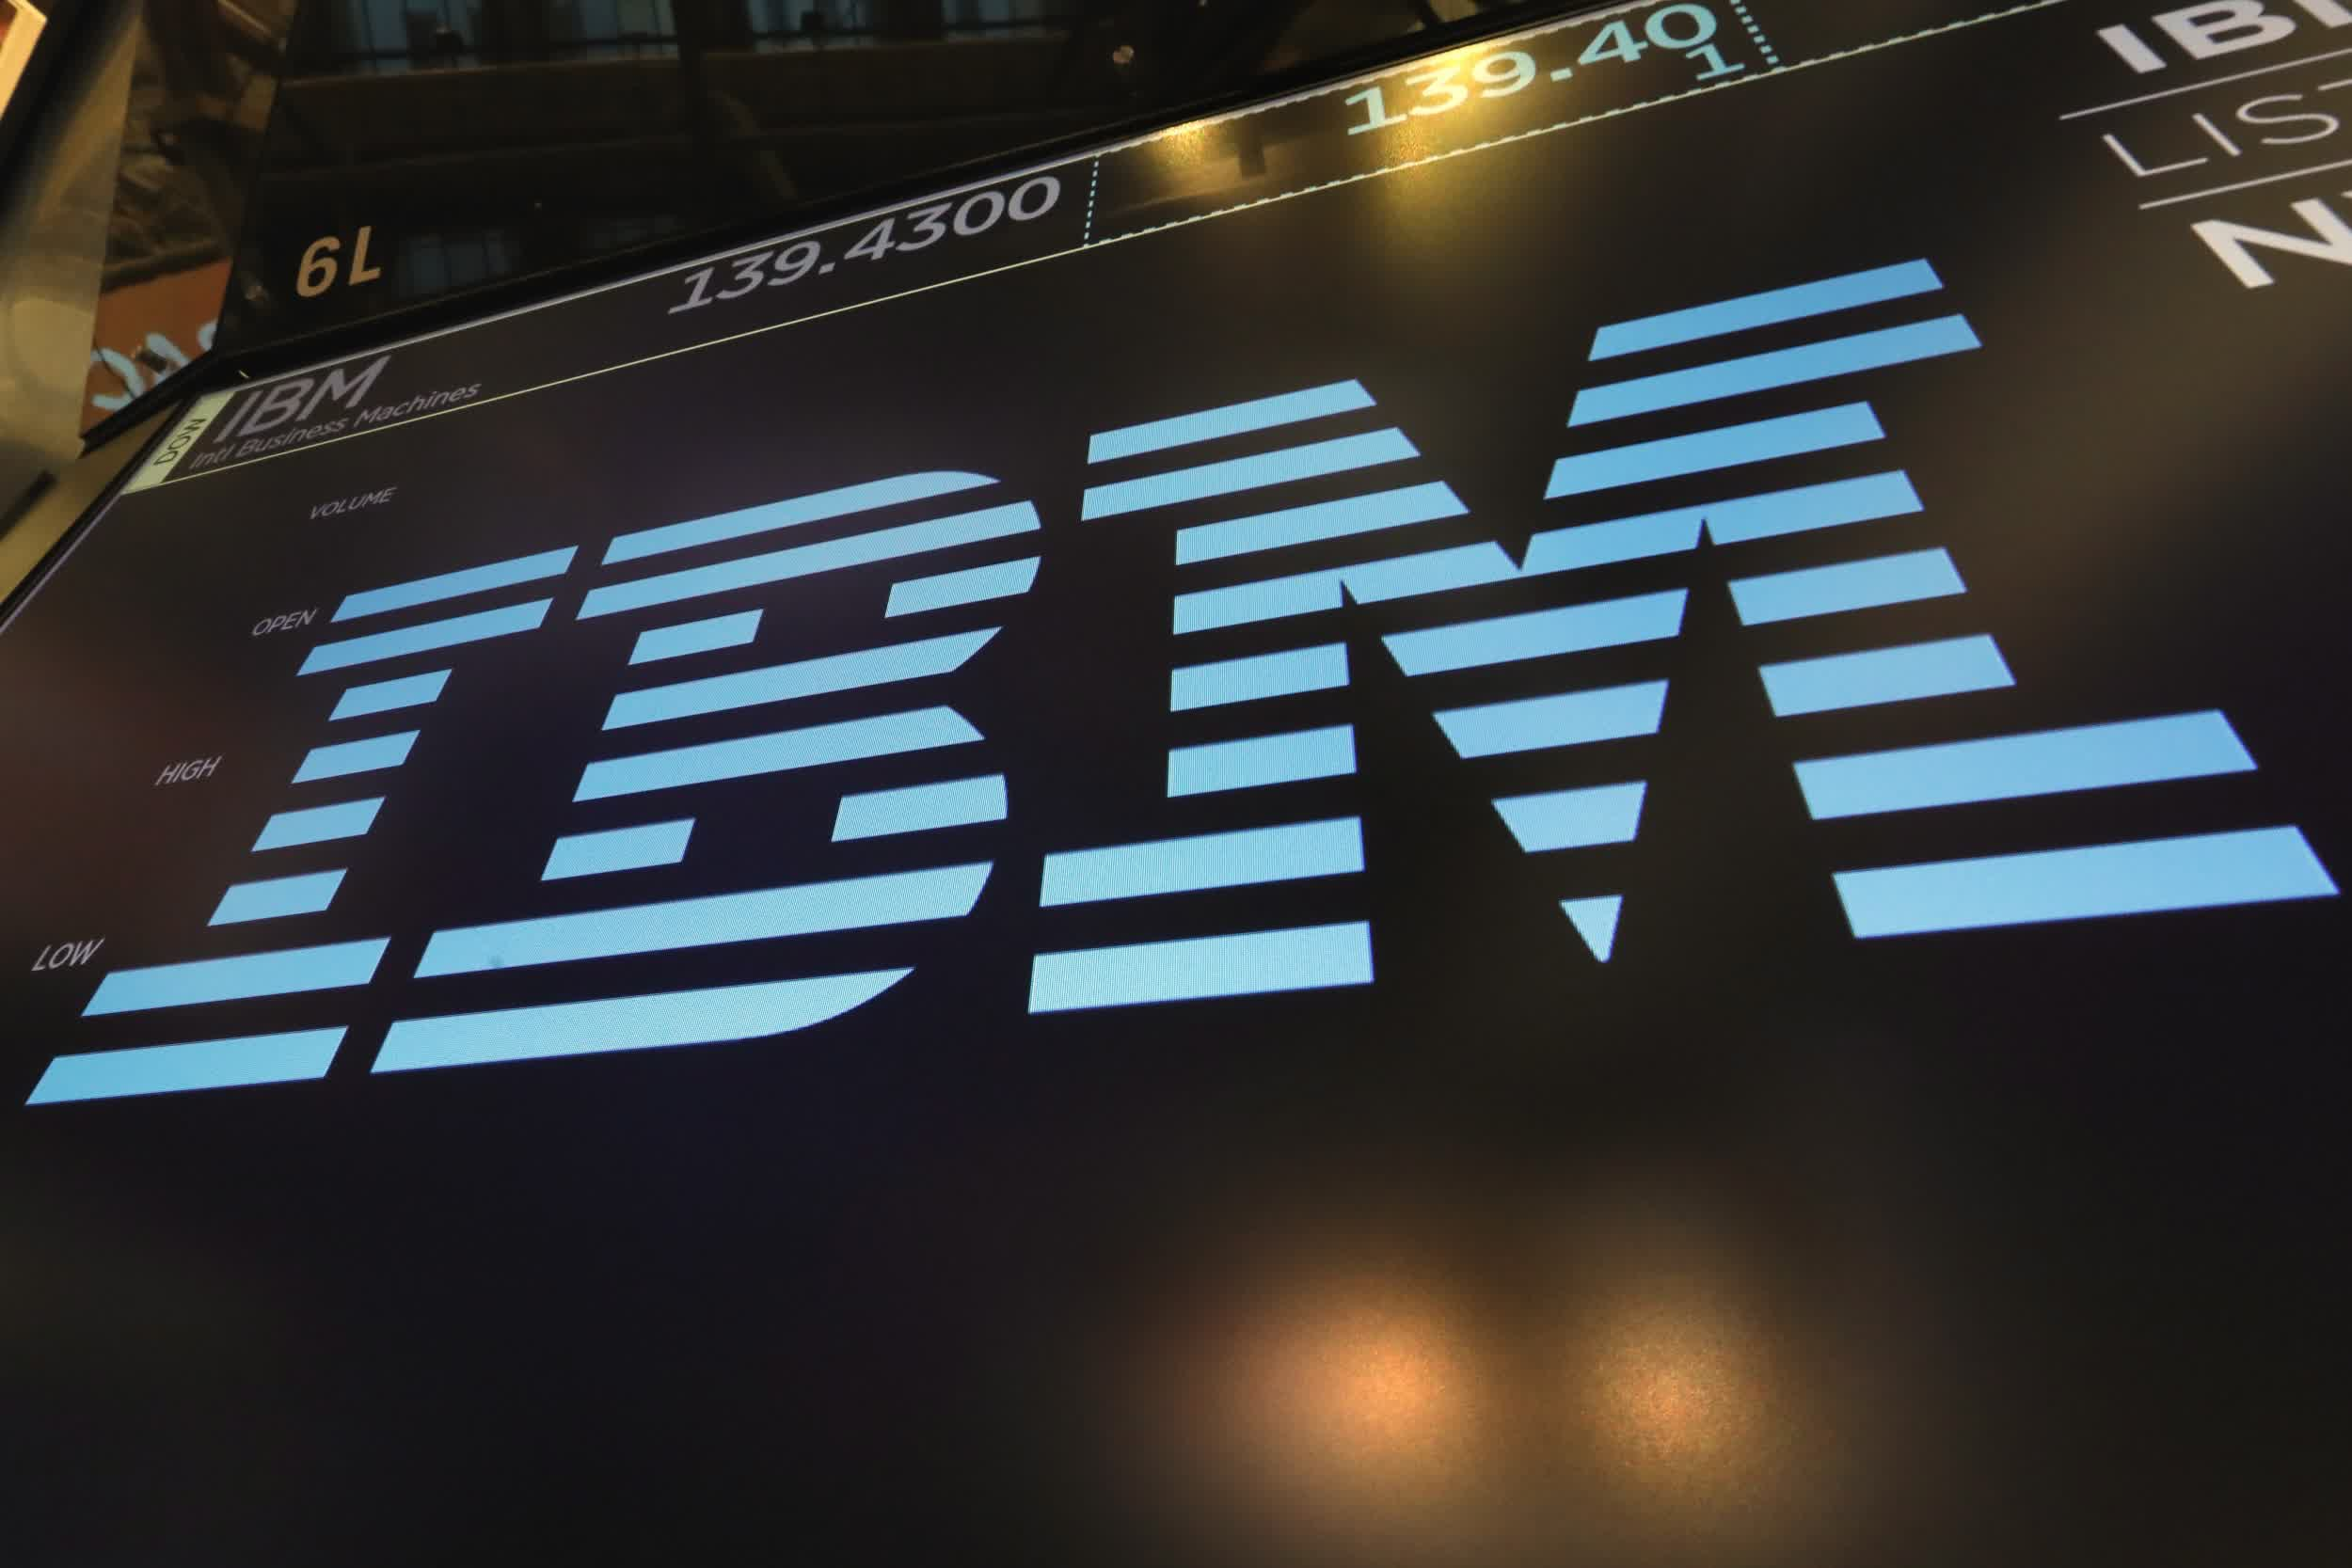 IBM is breaking up into two companies, renewed focus on AI and the cloud